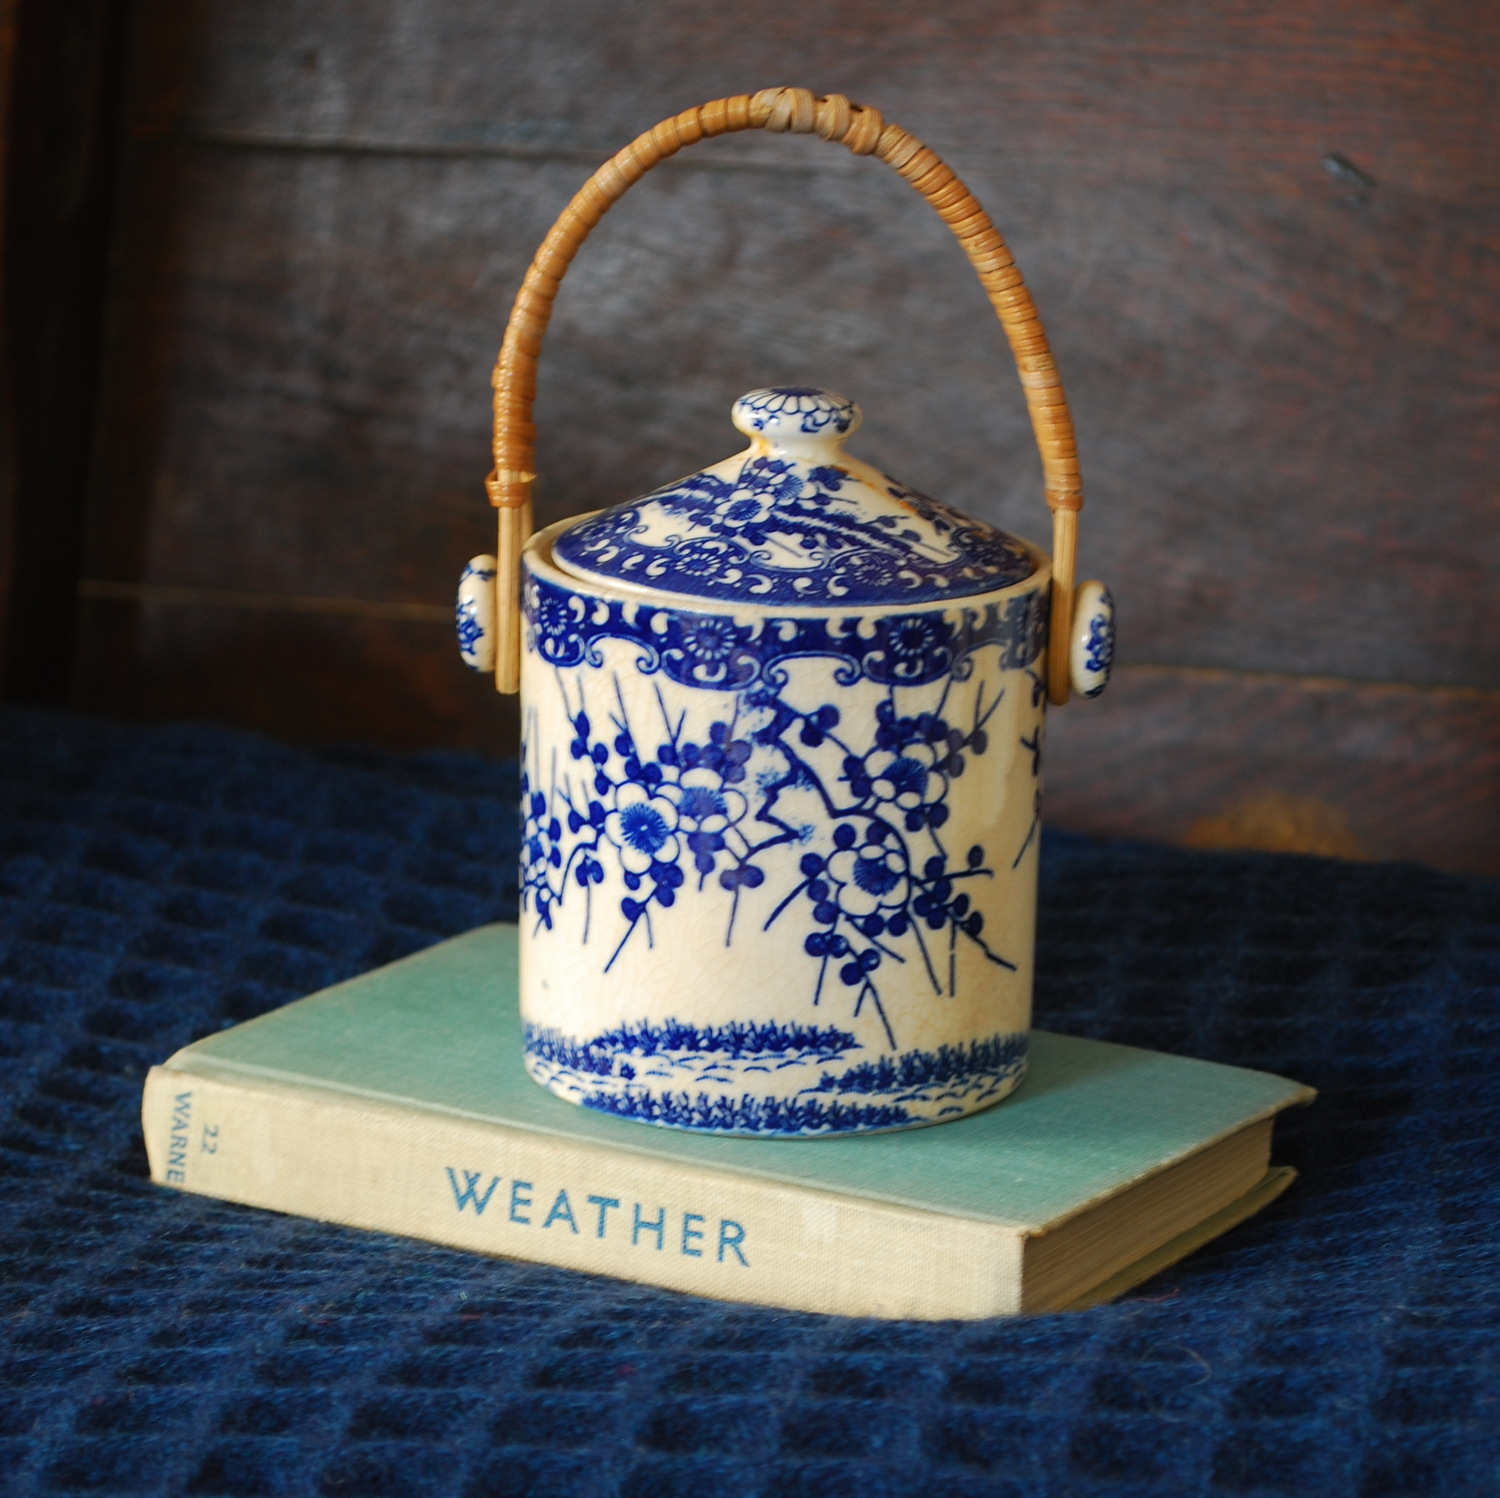 1-blue pot and weather book.JPG